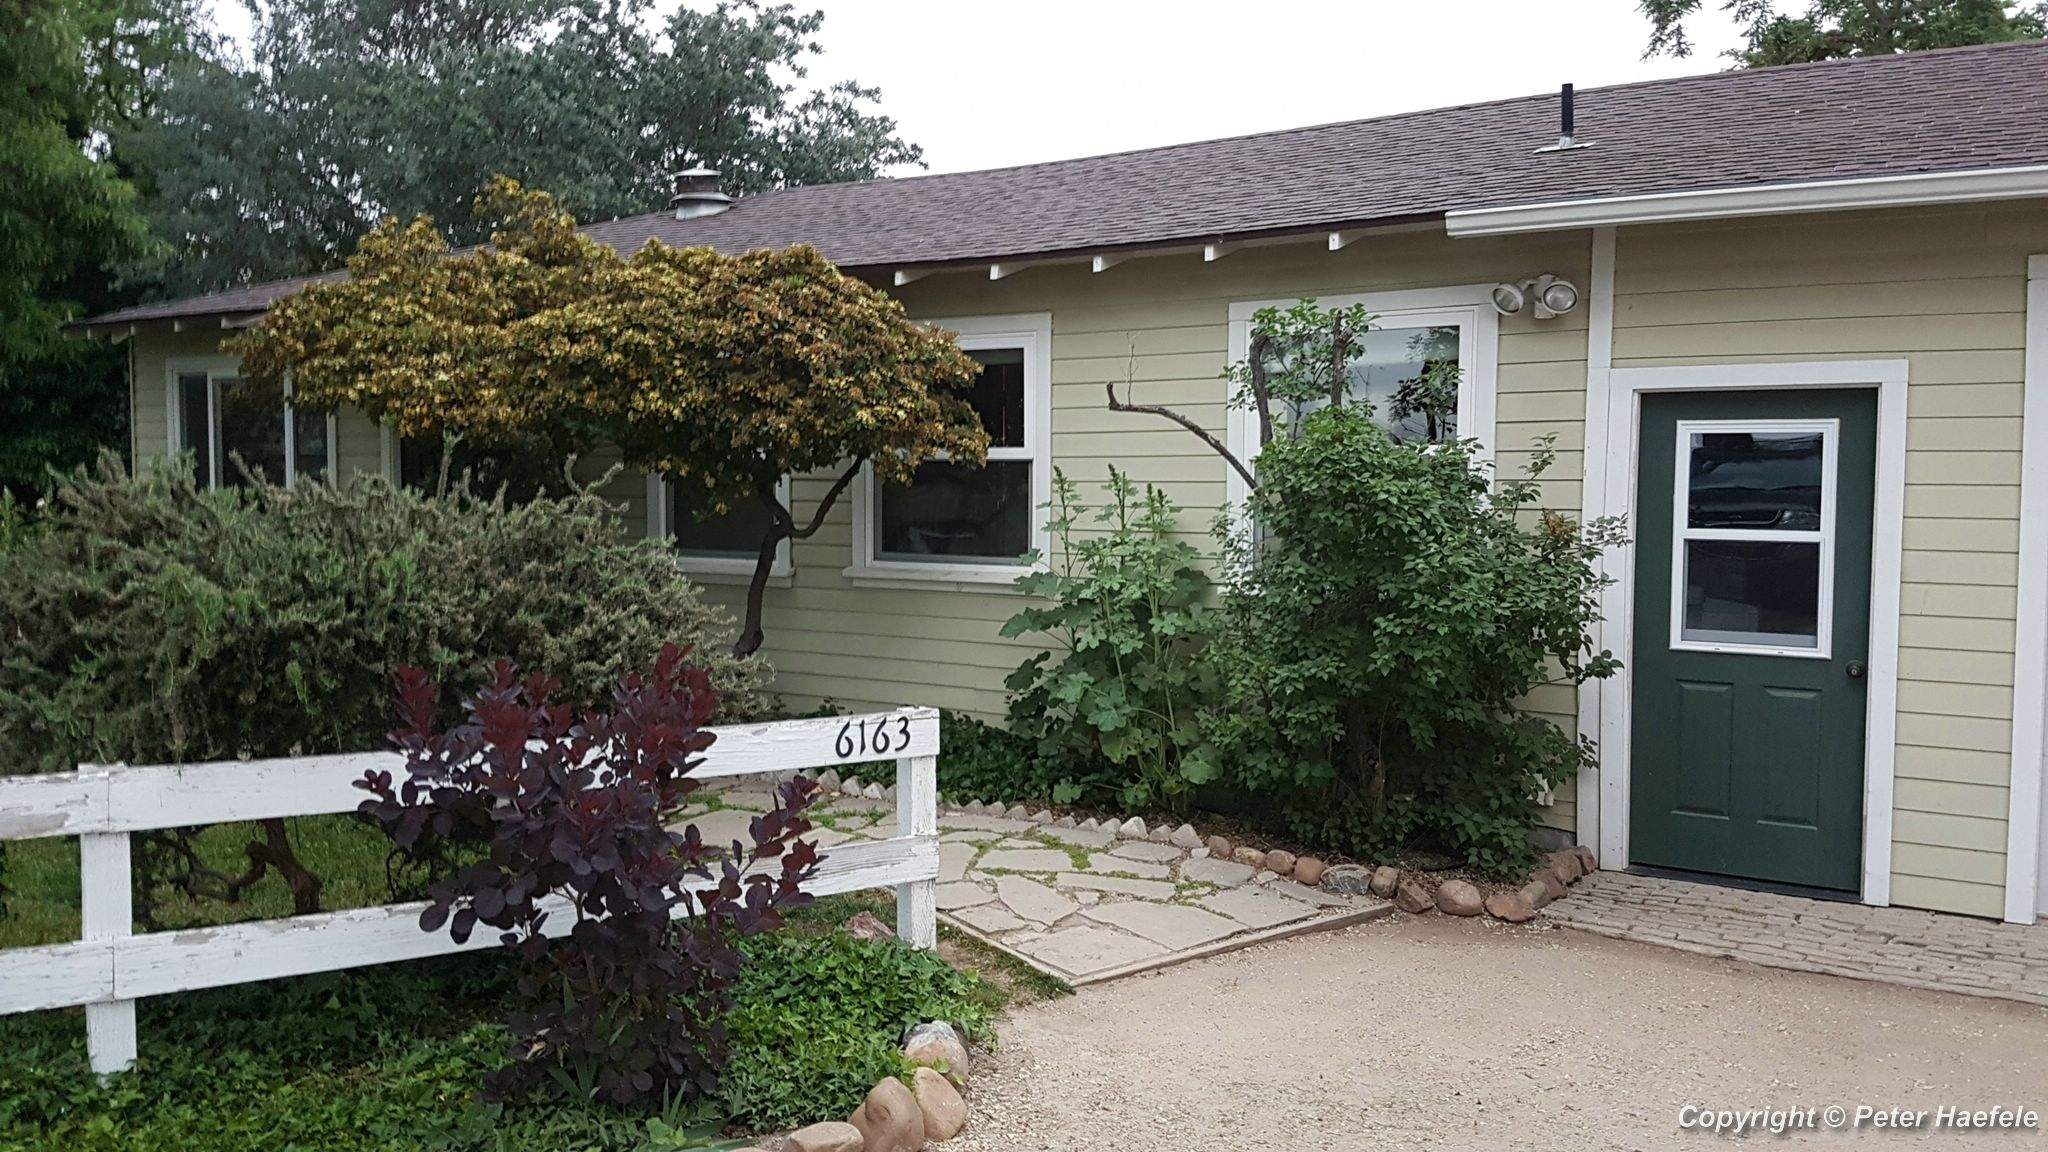 Ginnis Ranch House -Paso Robles - Airbnb - California